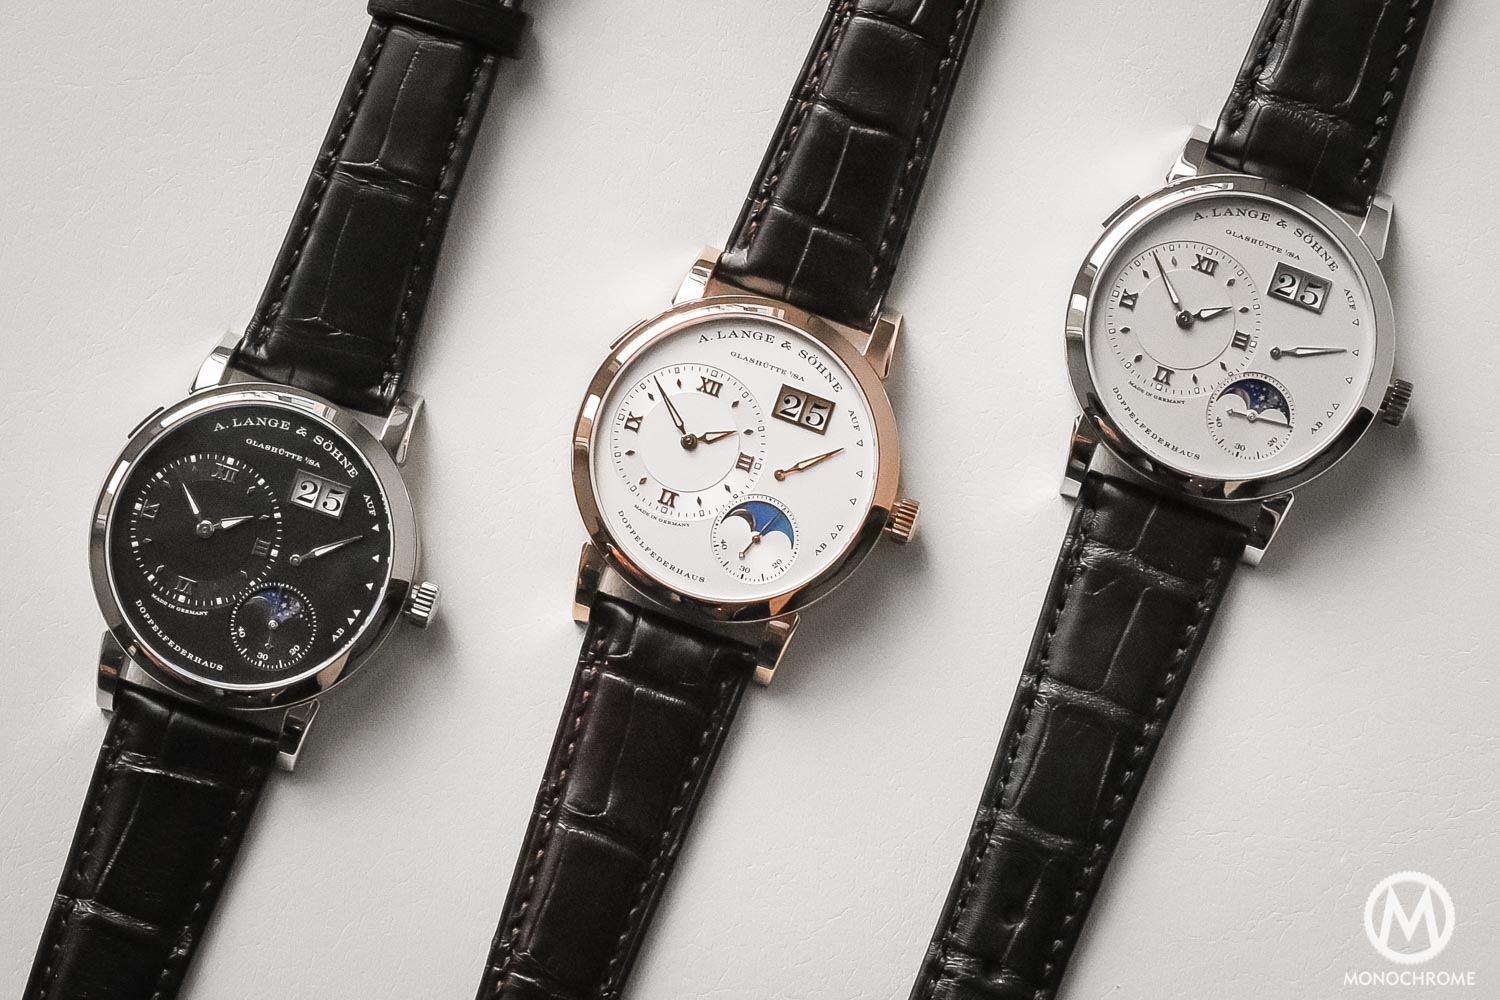 A. Lange Sohne Lange 1 Moon Phase new 2017